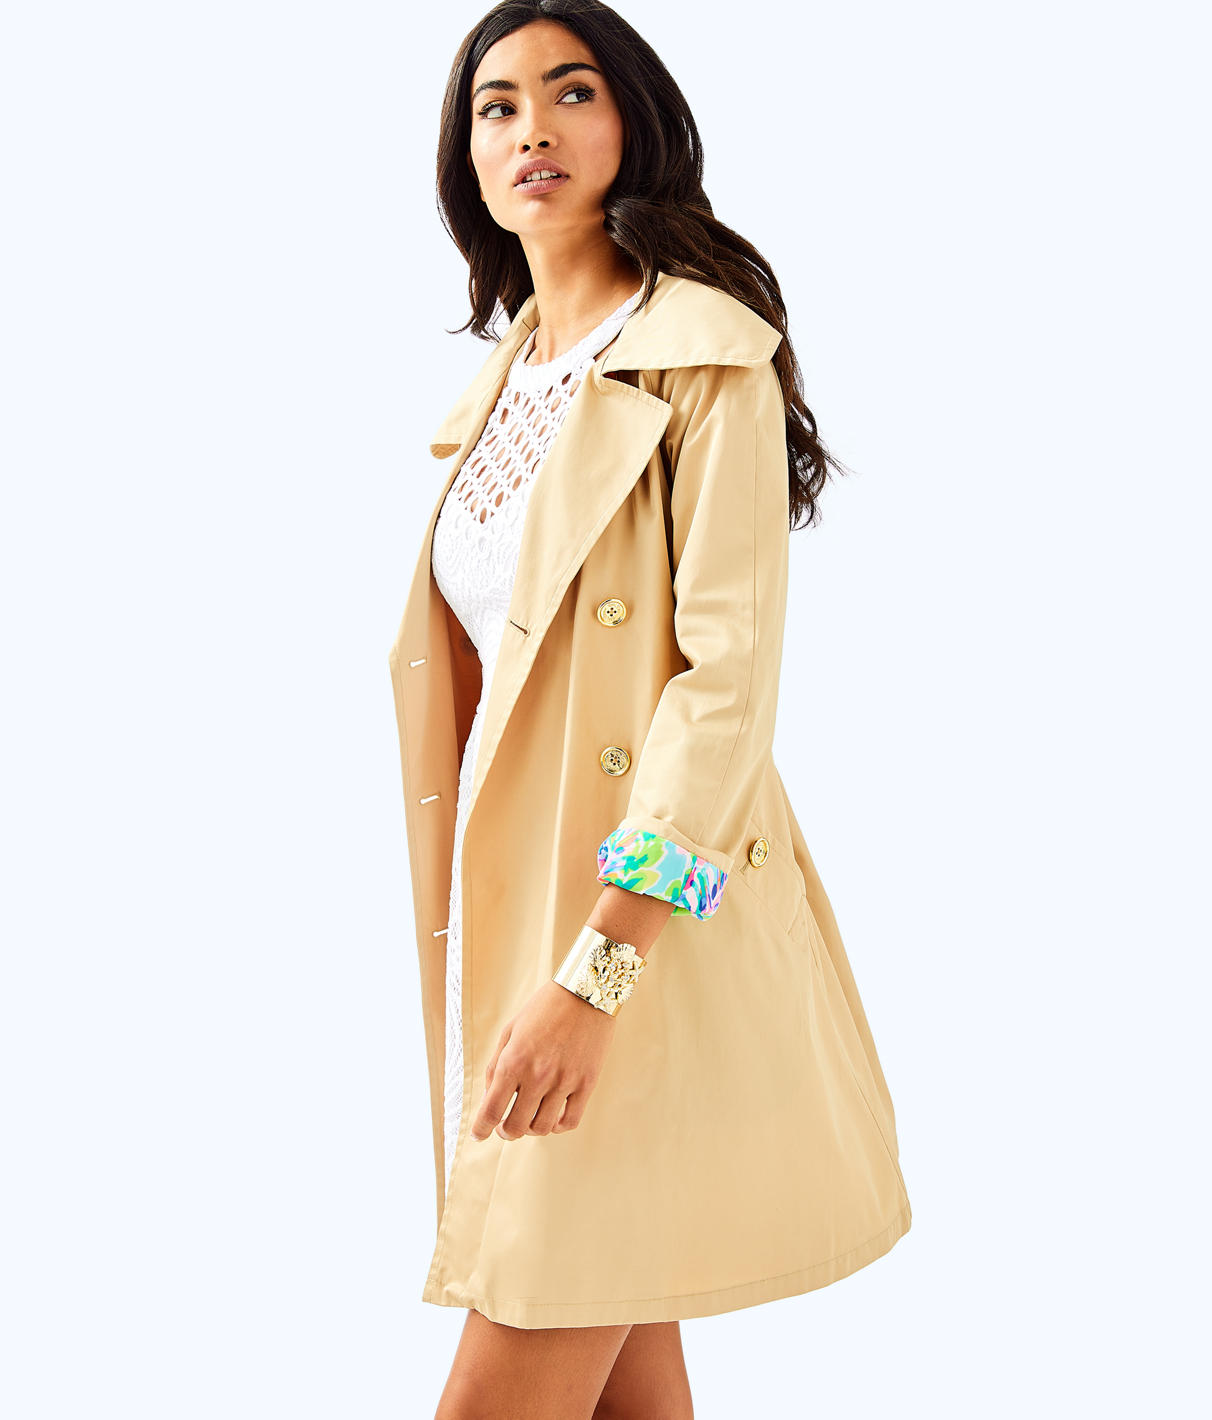 Lilly Pulitzer Lilly Pulitzer Womens Qynn Trench Coat